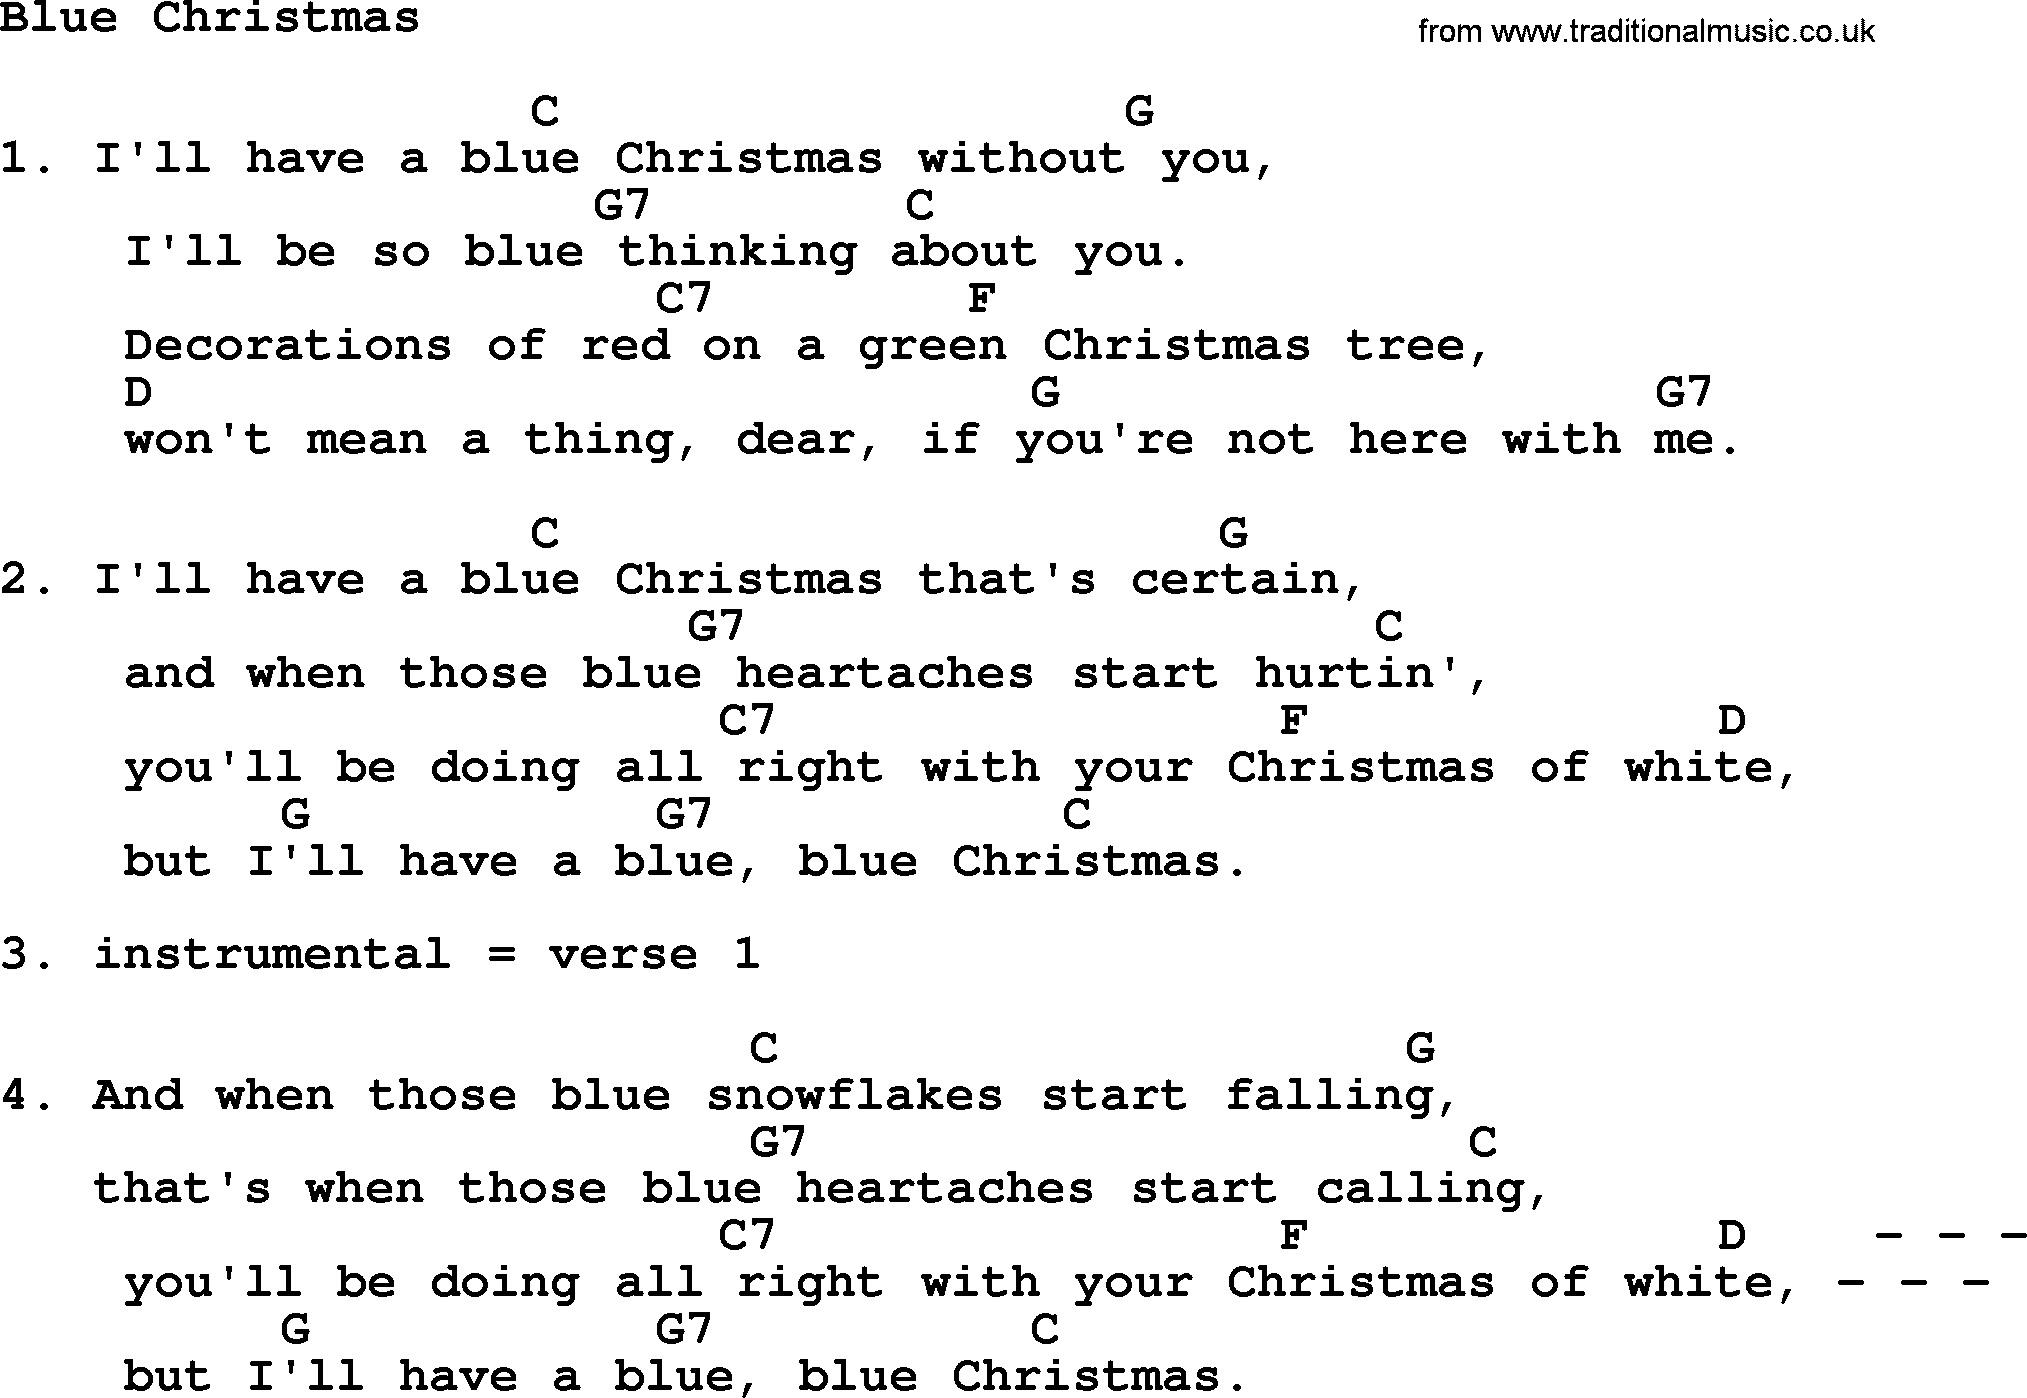 loretta lynn song blue christmas lyrics and chords - I Ll Have A Blue Christmas Lyrics